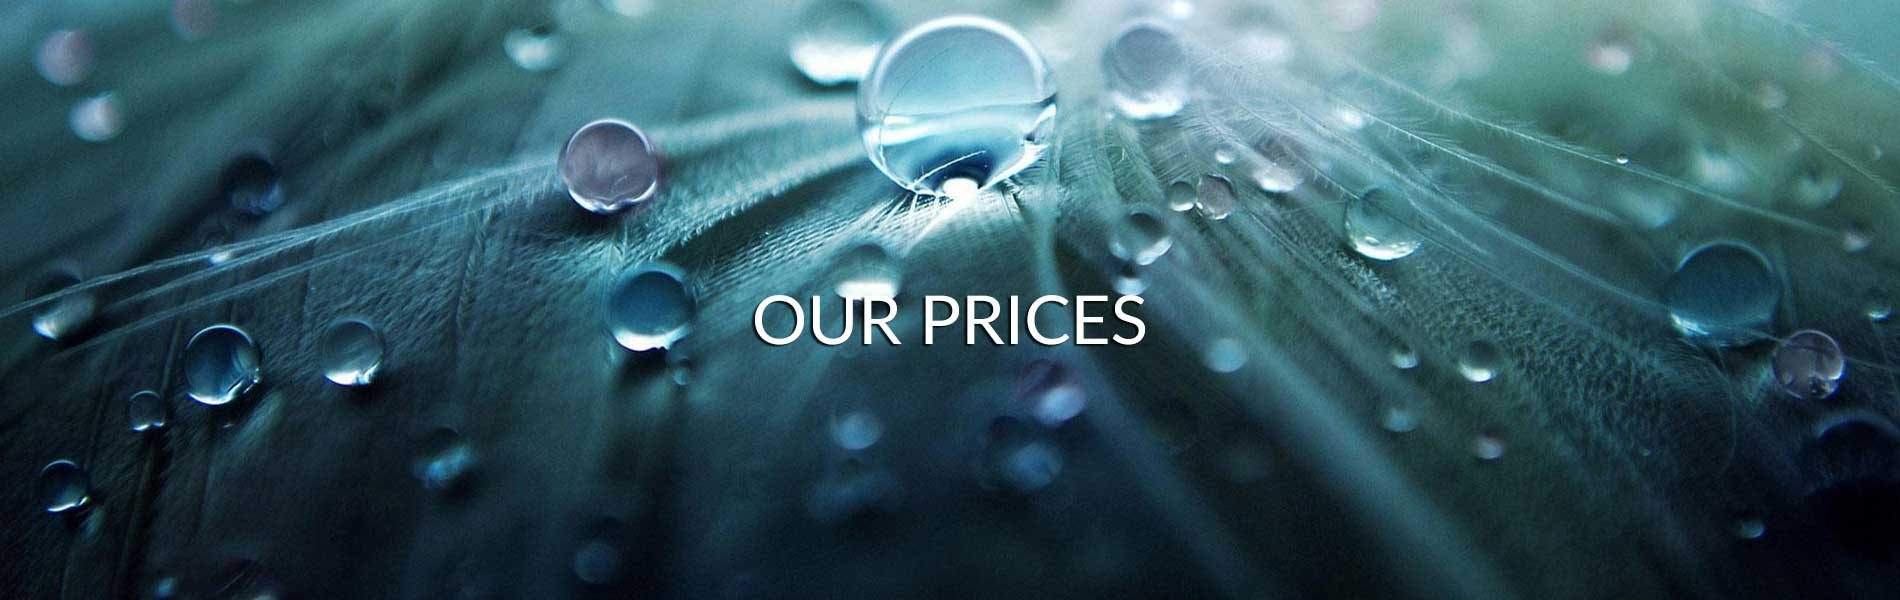 Our-Prices-Slider-Image